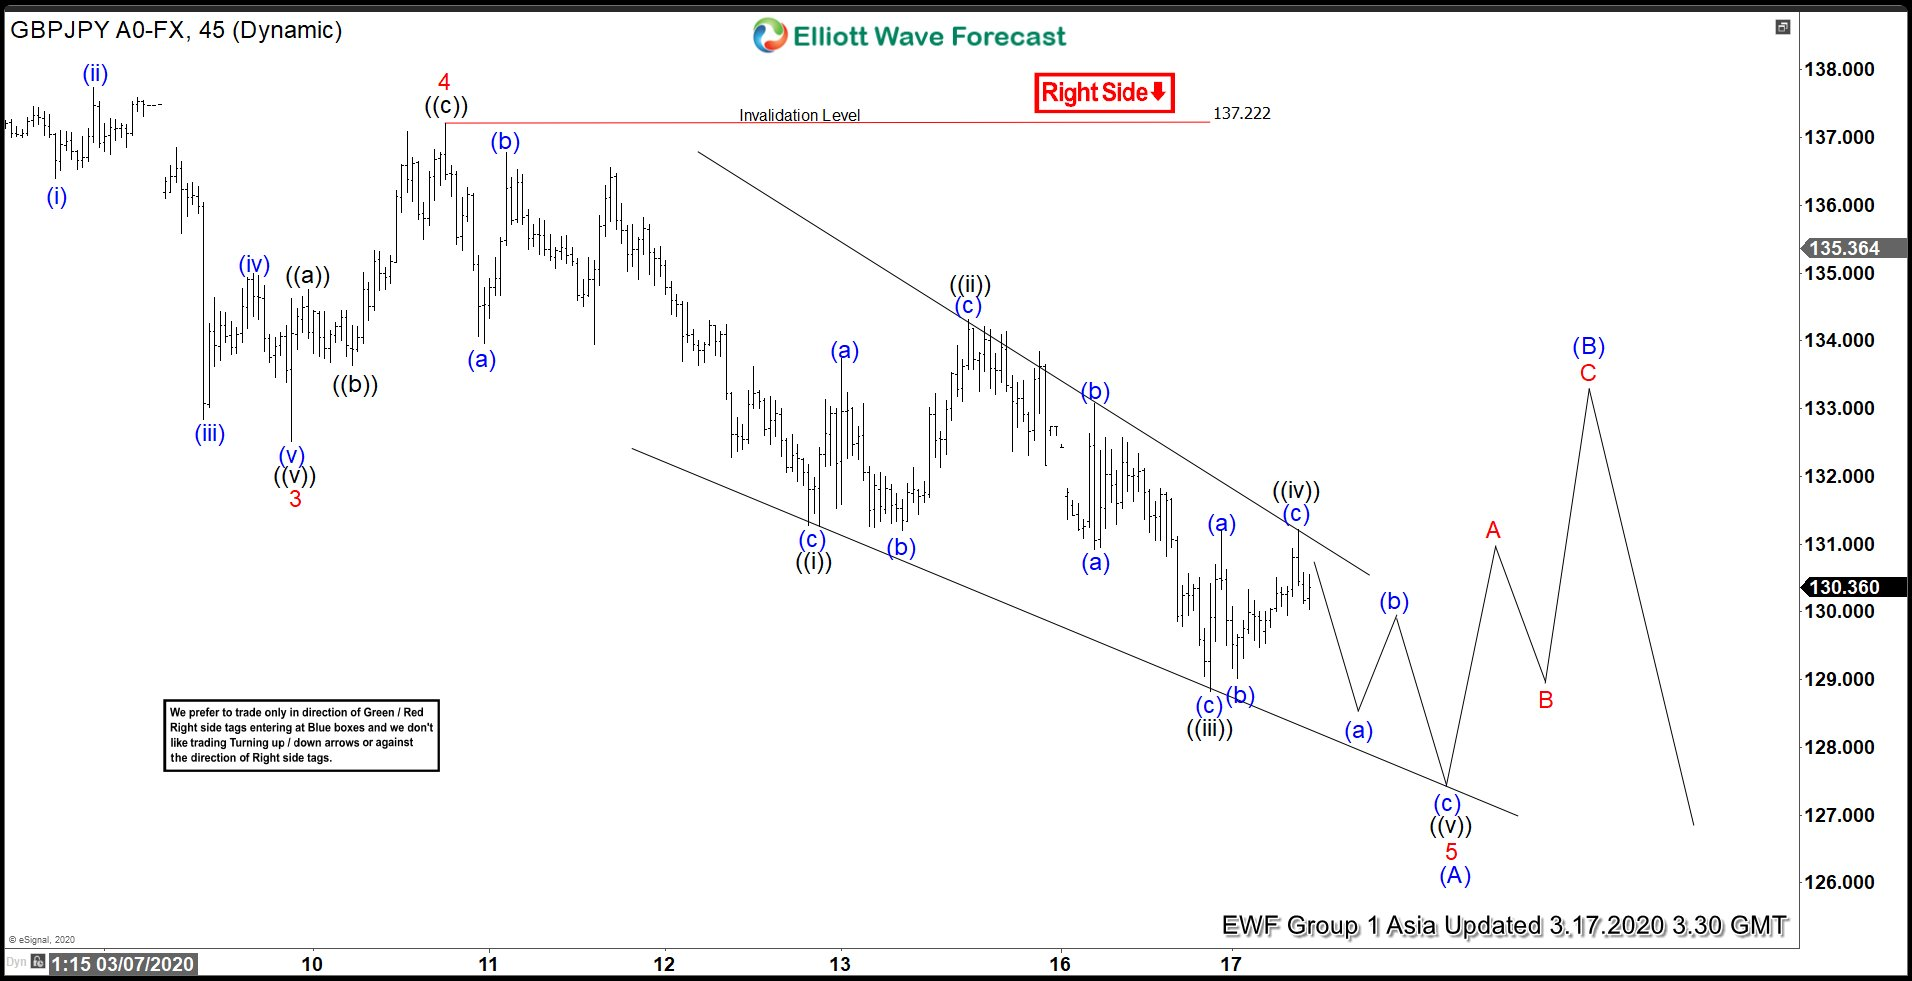 Elliott Wave View: GBPJPY Ending 5 Waves Impulse